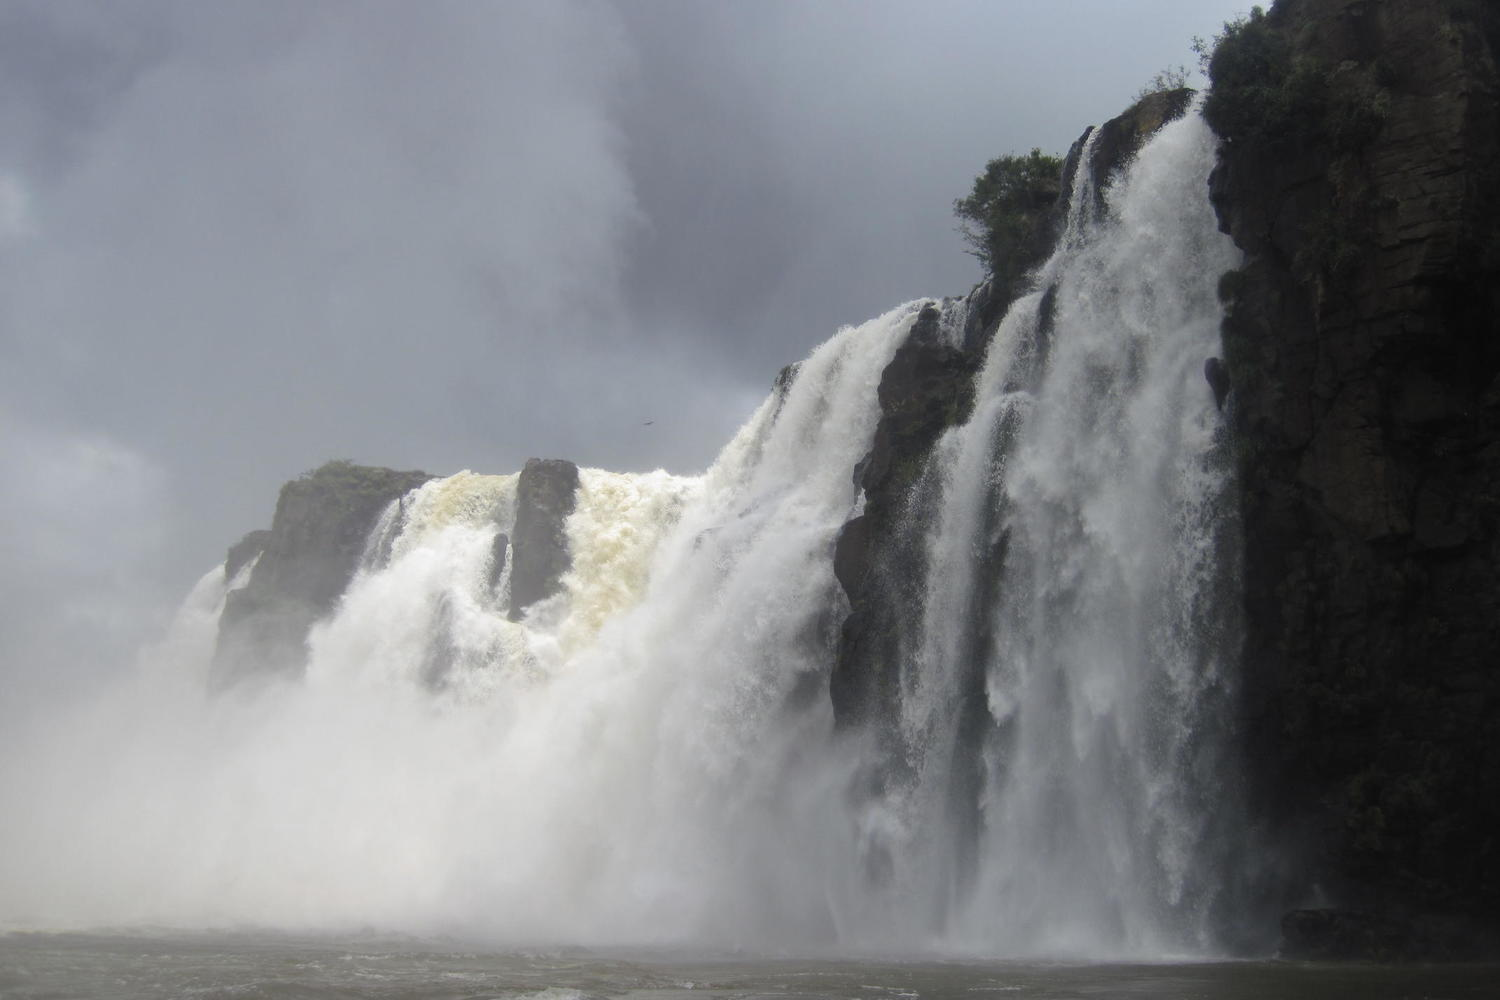 Boat ride under the Iguassu Falls